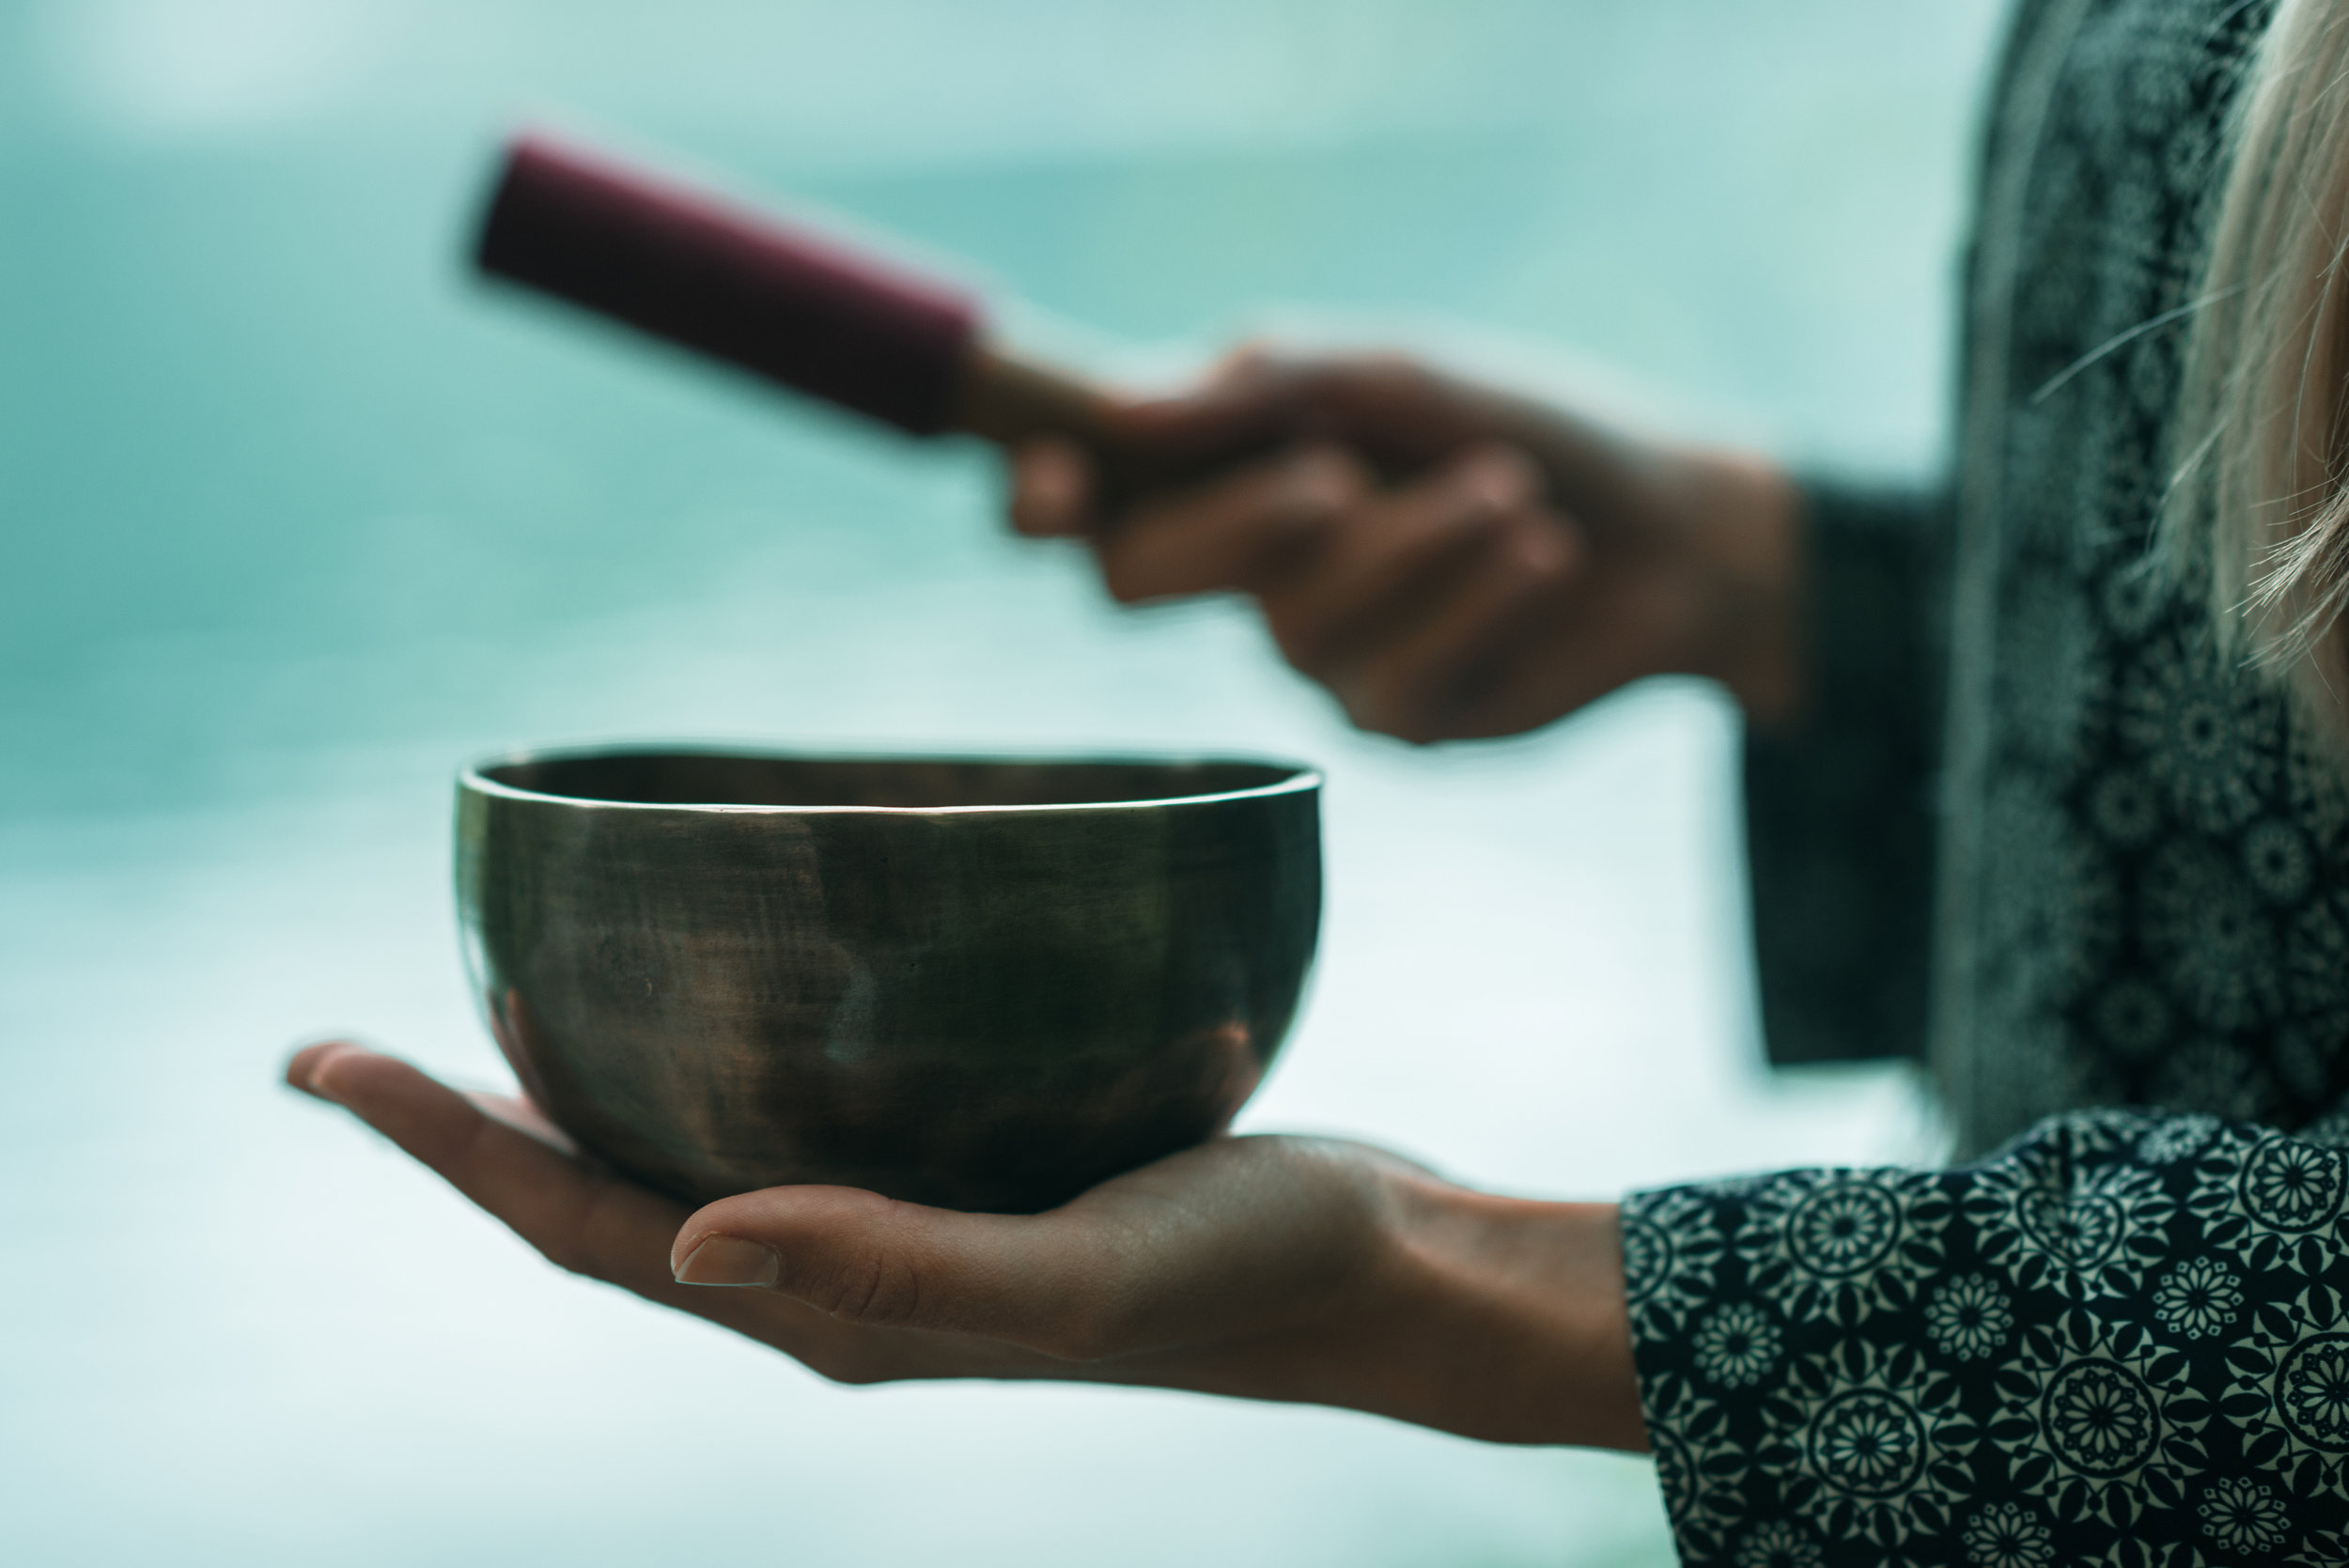 SOUND HEALING - Completely relax while absorbing the therapeutic healing of Tibetan singing bowls. Diffuse the negative impacts of stress, anxiety and life worries as you take part in this unique hands-on meditation.